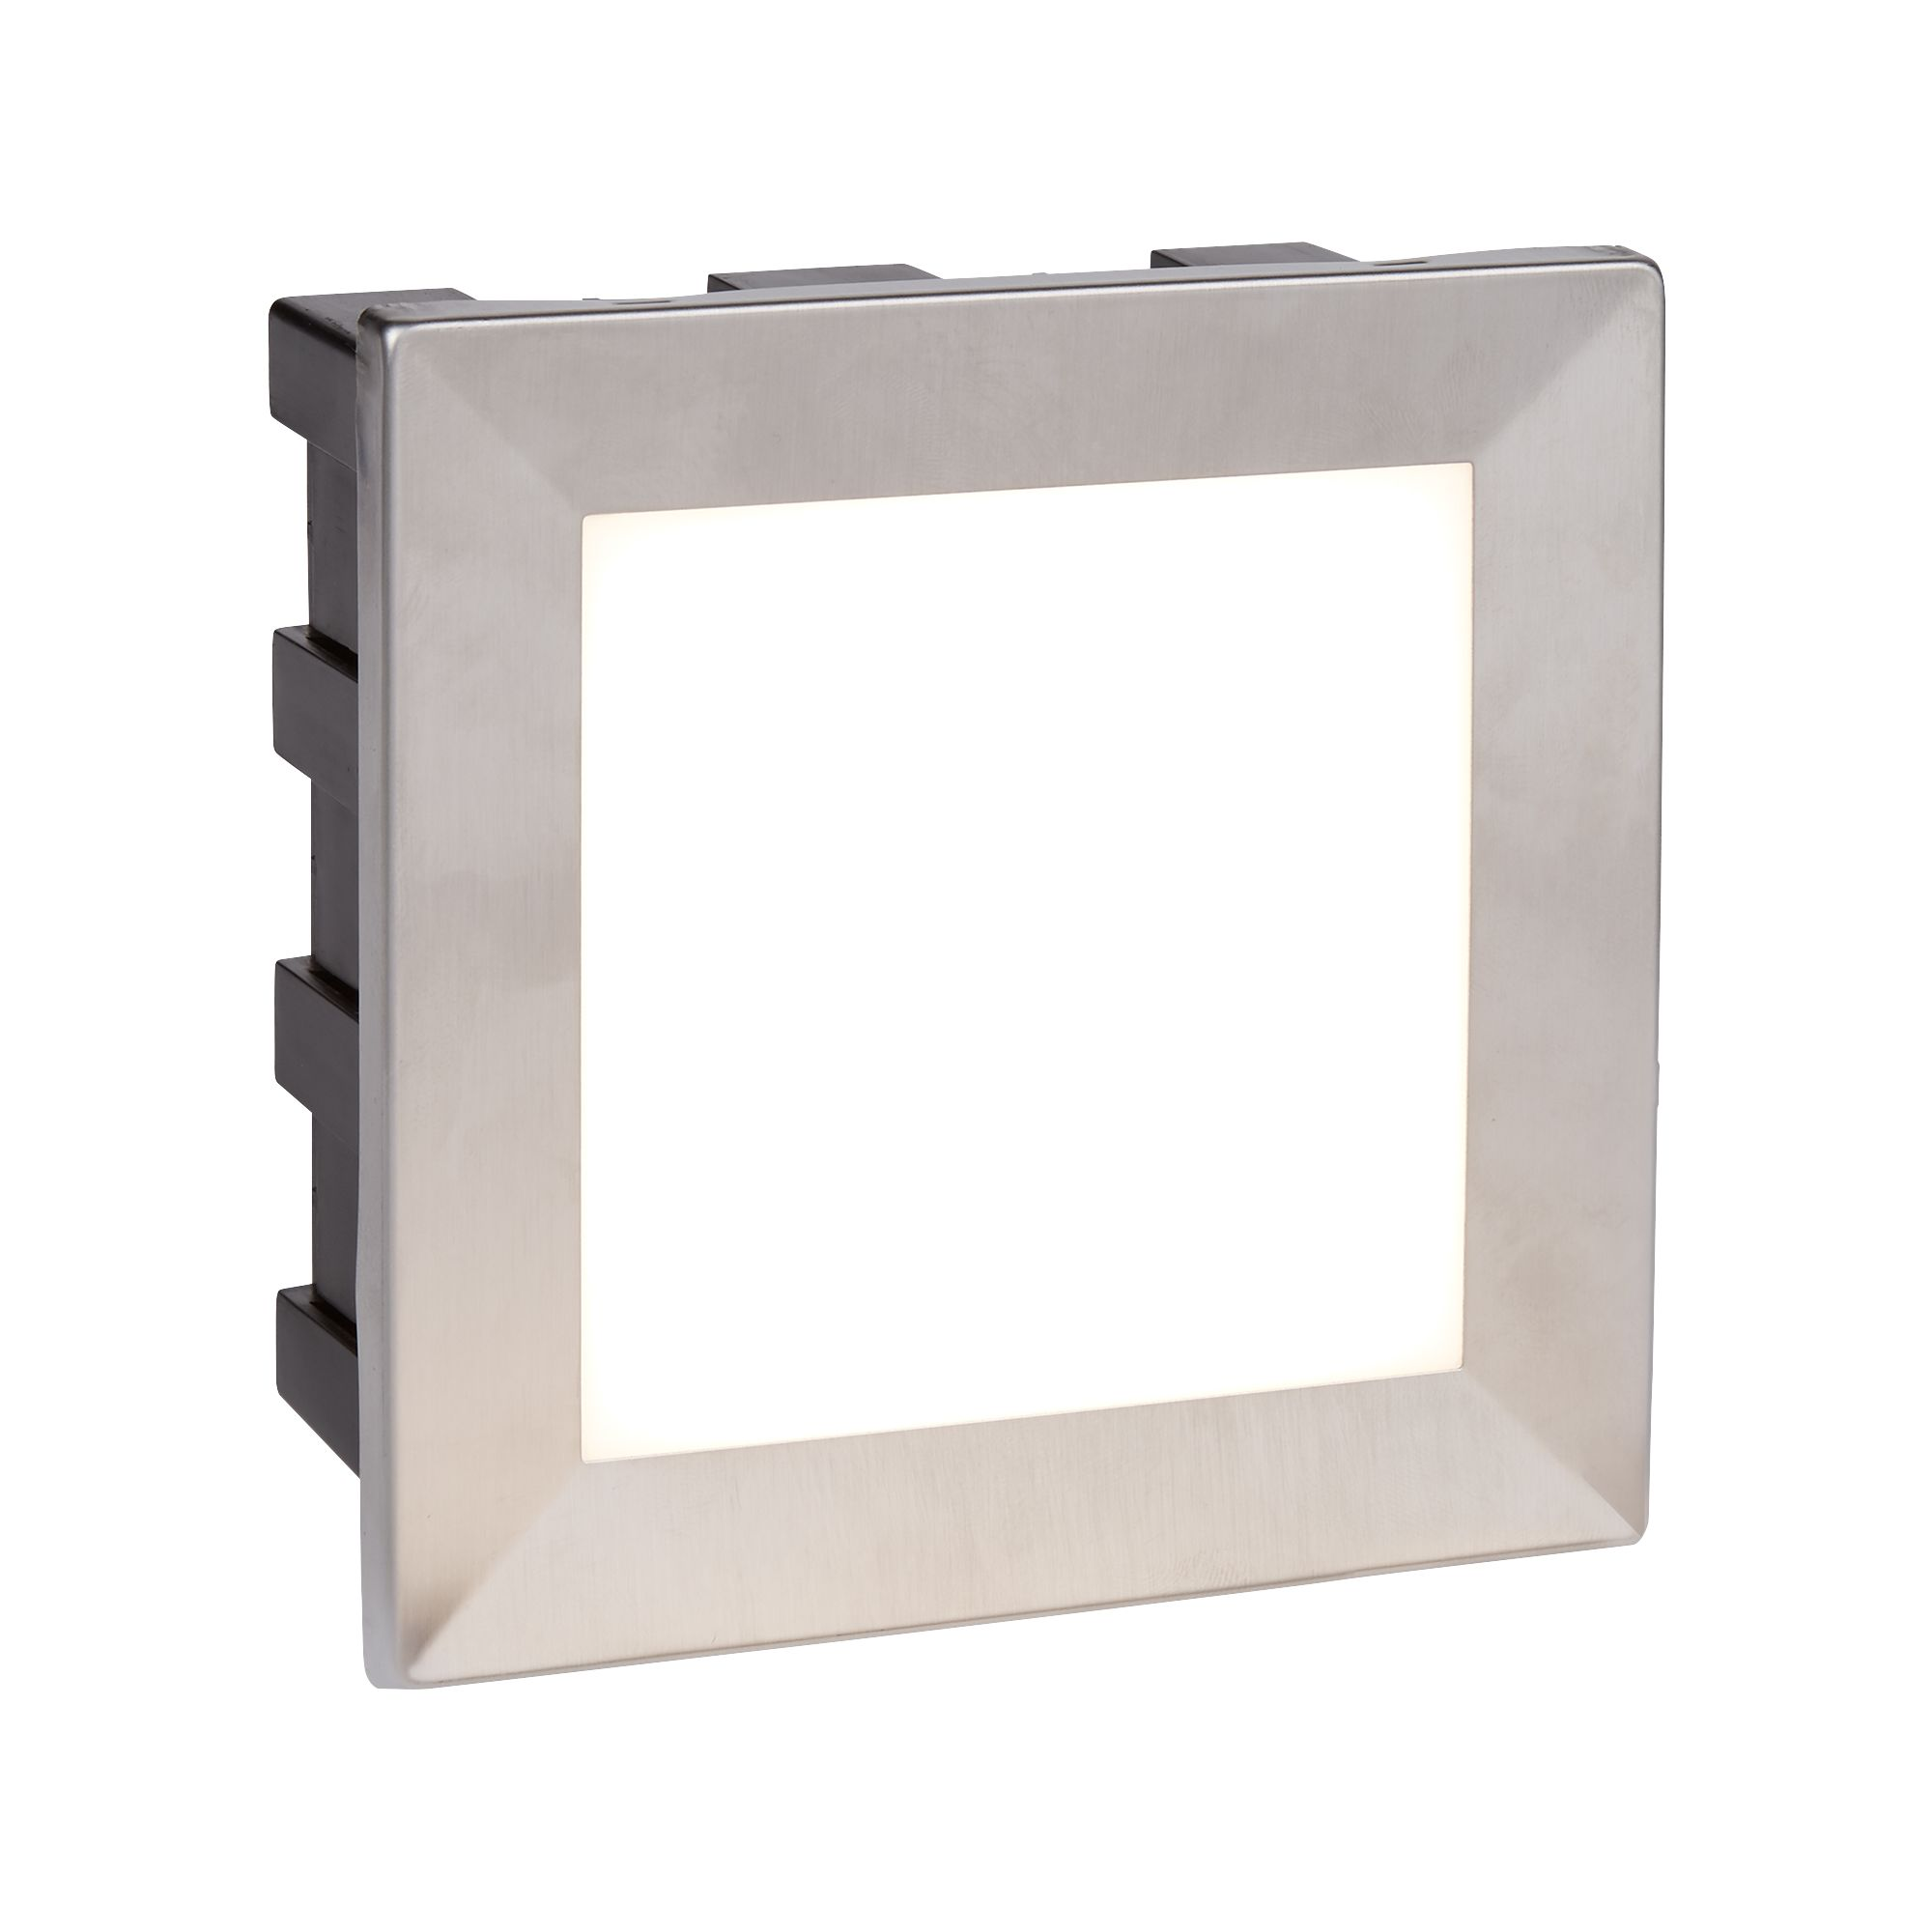 Stainless Steel Wall Led Outdoor Recessed Square, Opal White Polycarbonate Diffu